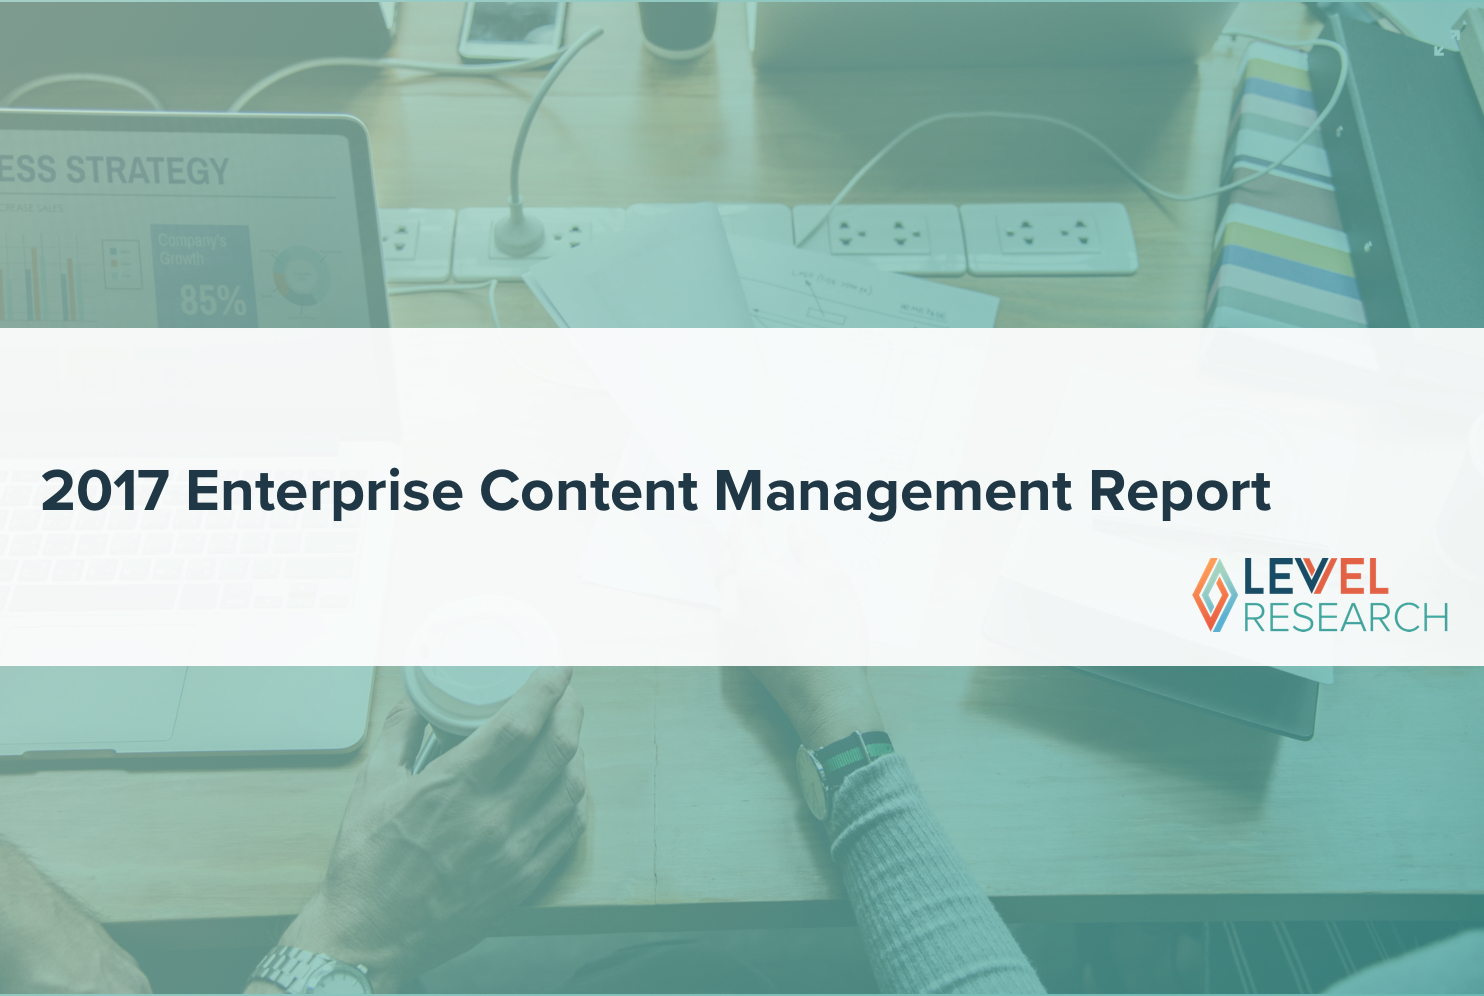 2017 Enterprise Content Management Report